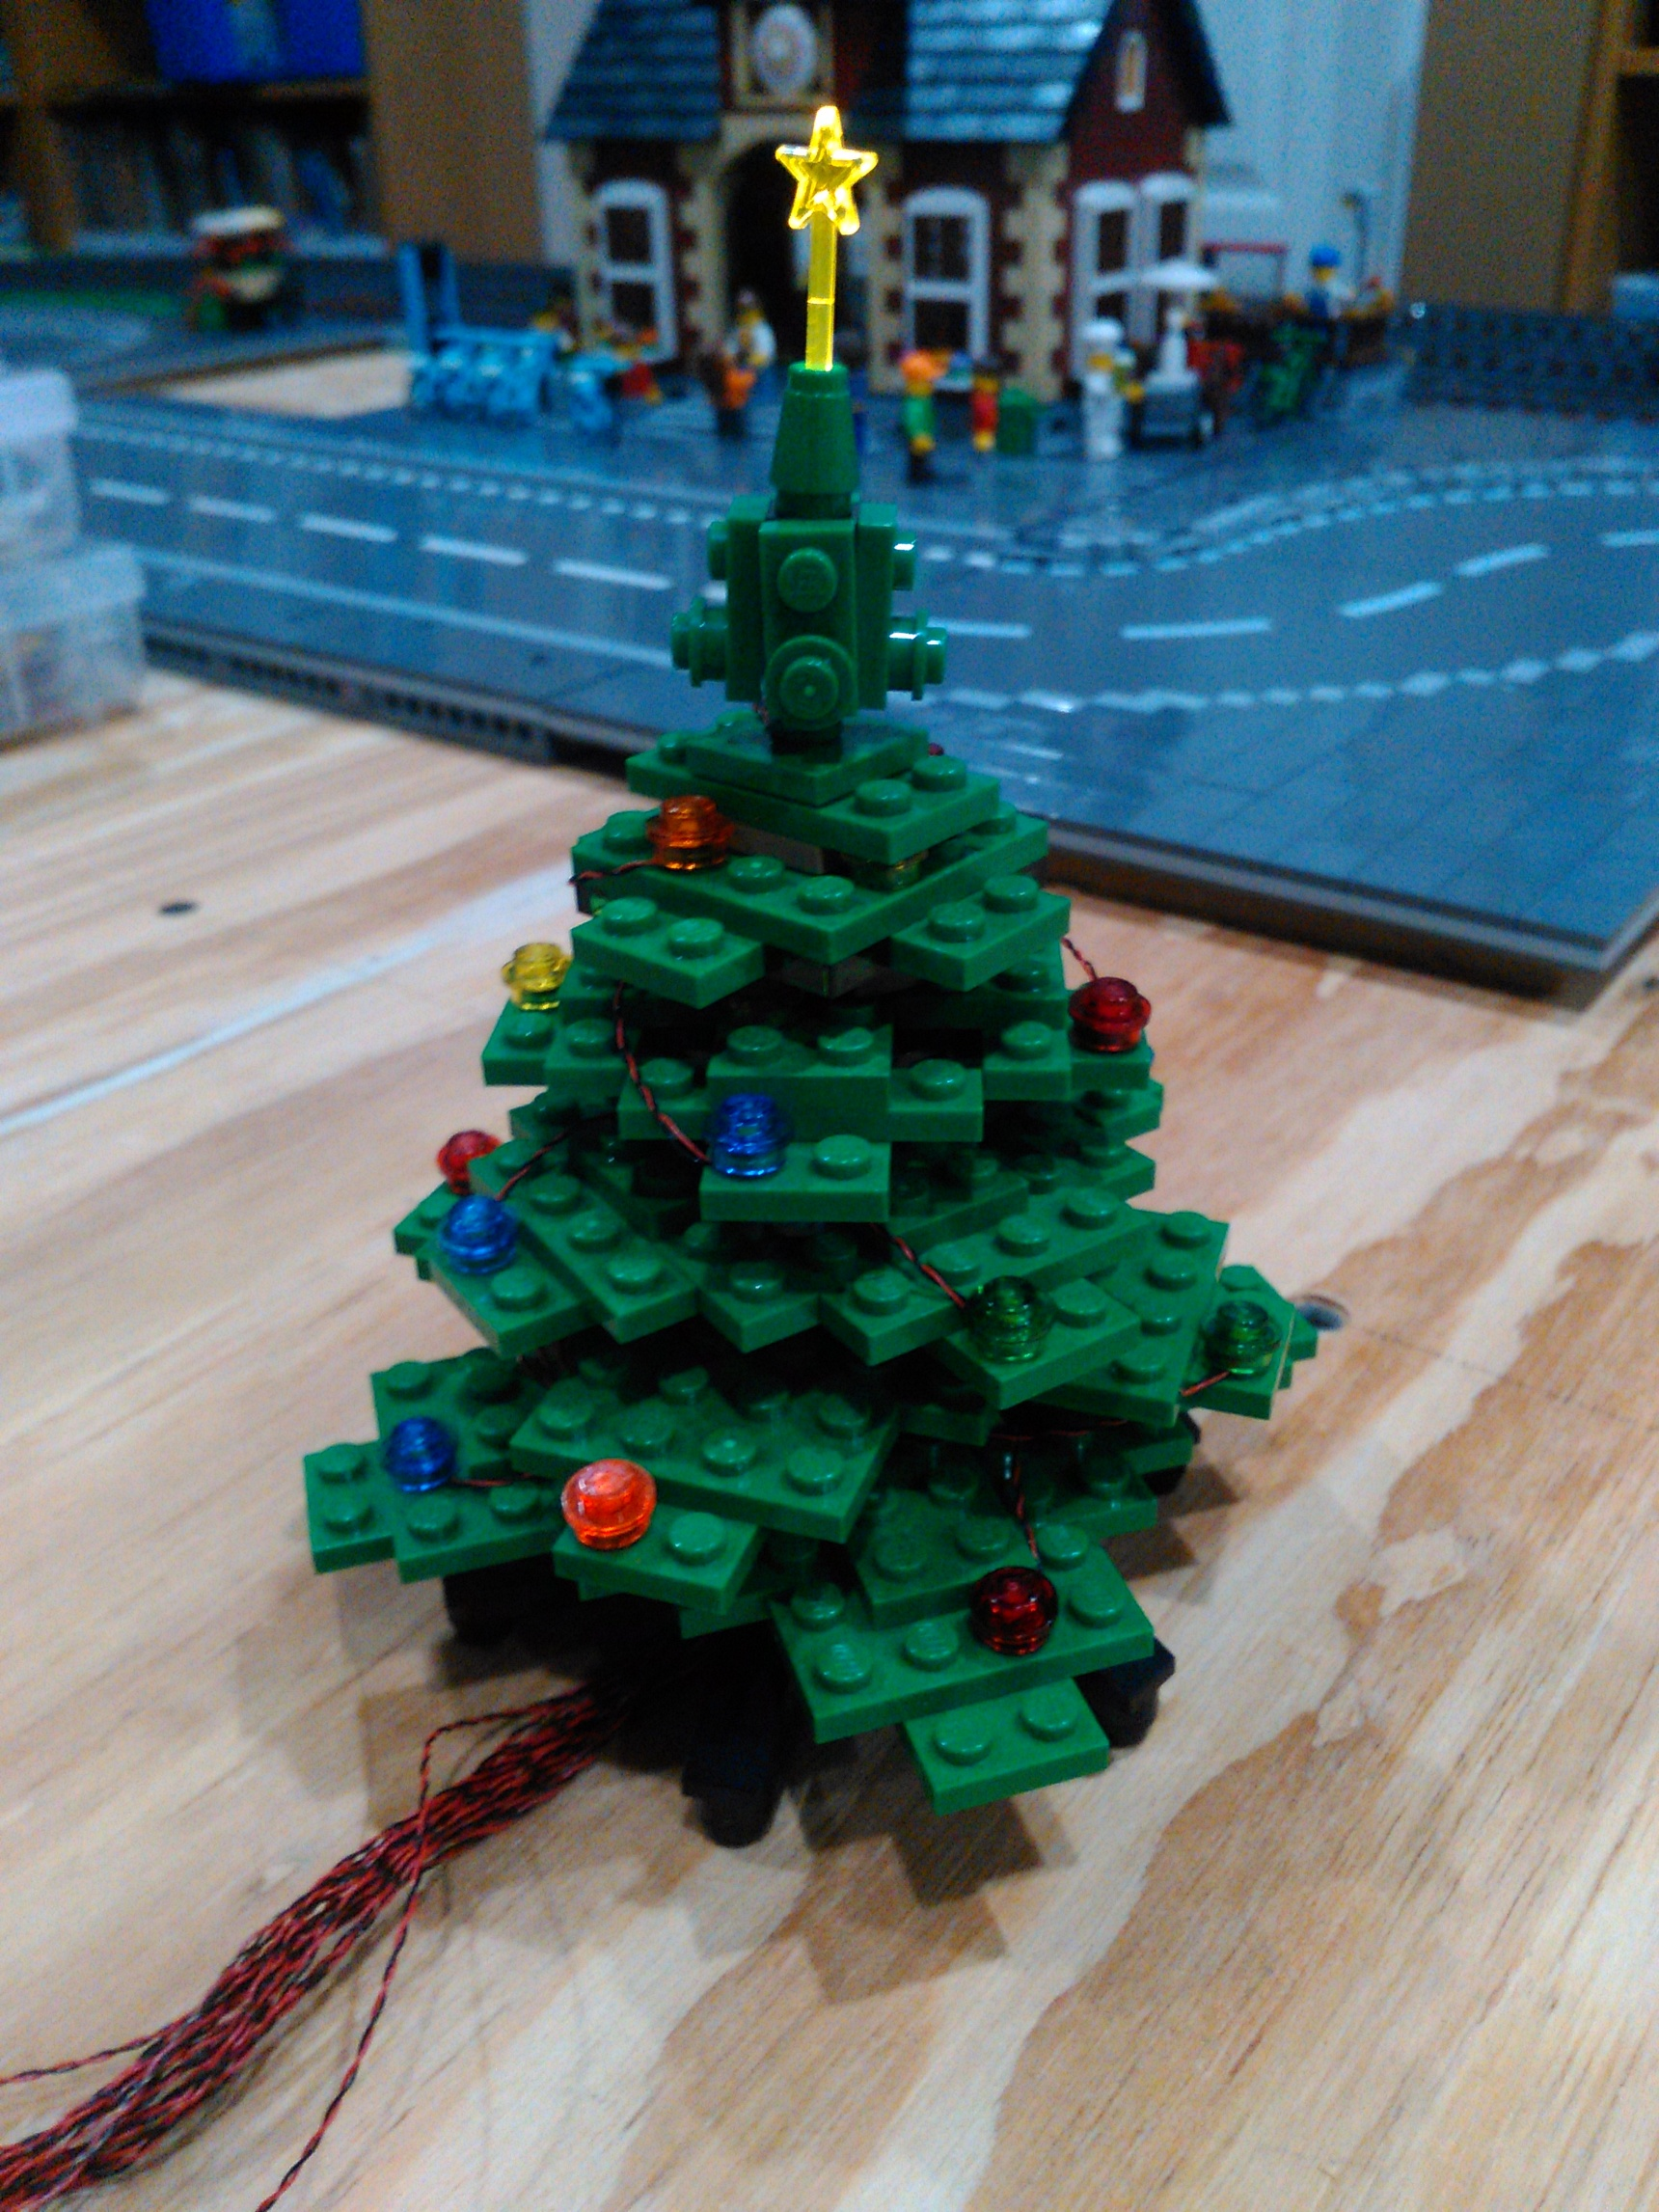 10249 Winter Village Toy Shop Christmas Tree Your Creations Lego Exclusive The And Baseplate Will Reside Next To My Train Station See Empty Spot In Pic 3 Be On Display At Our Show December